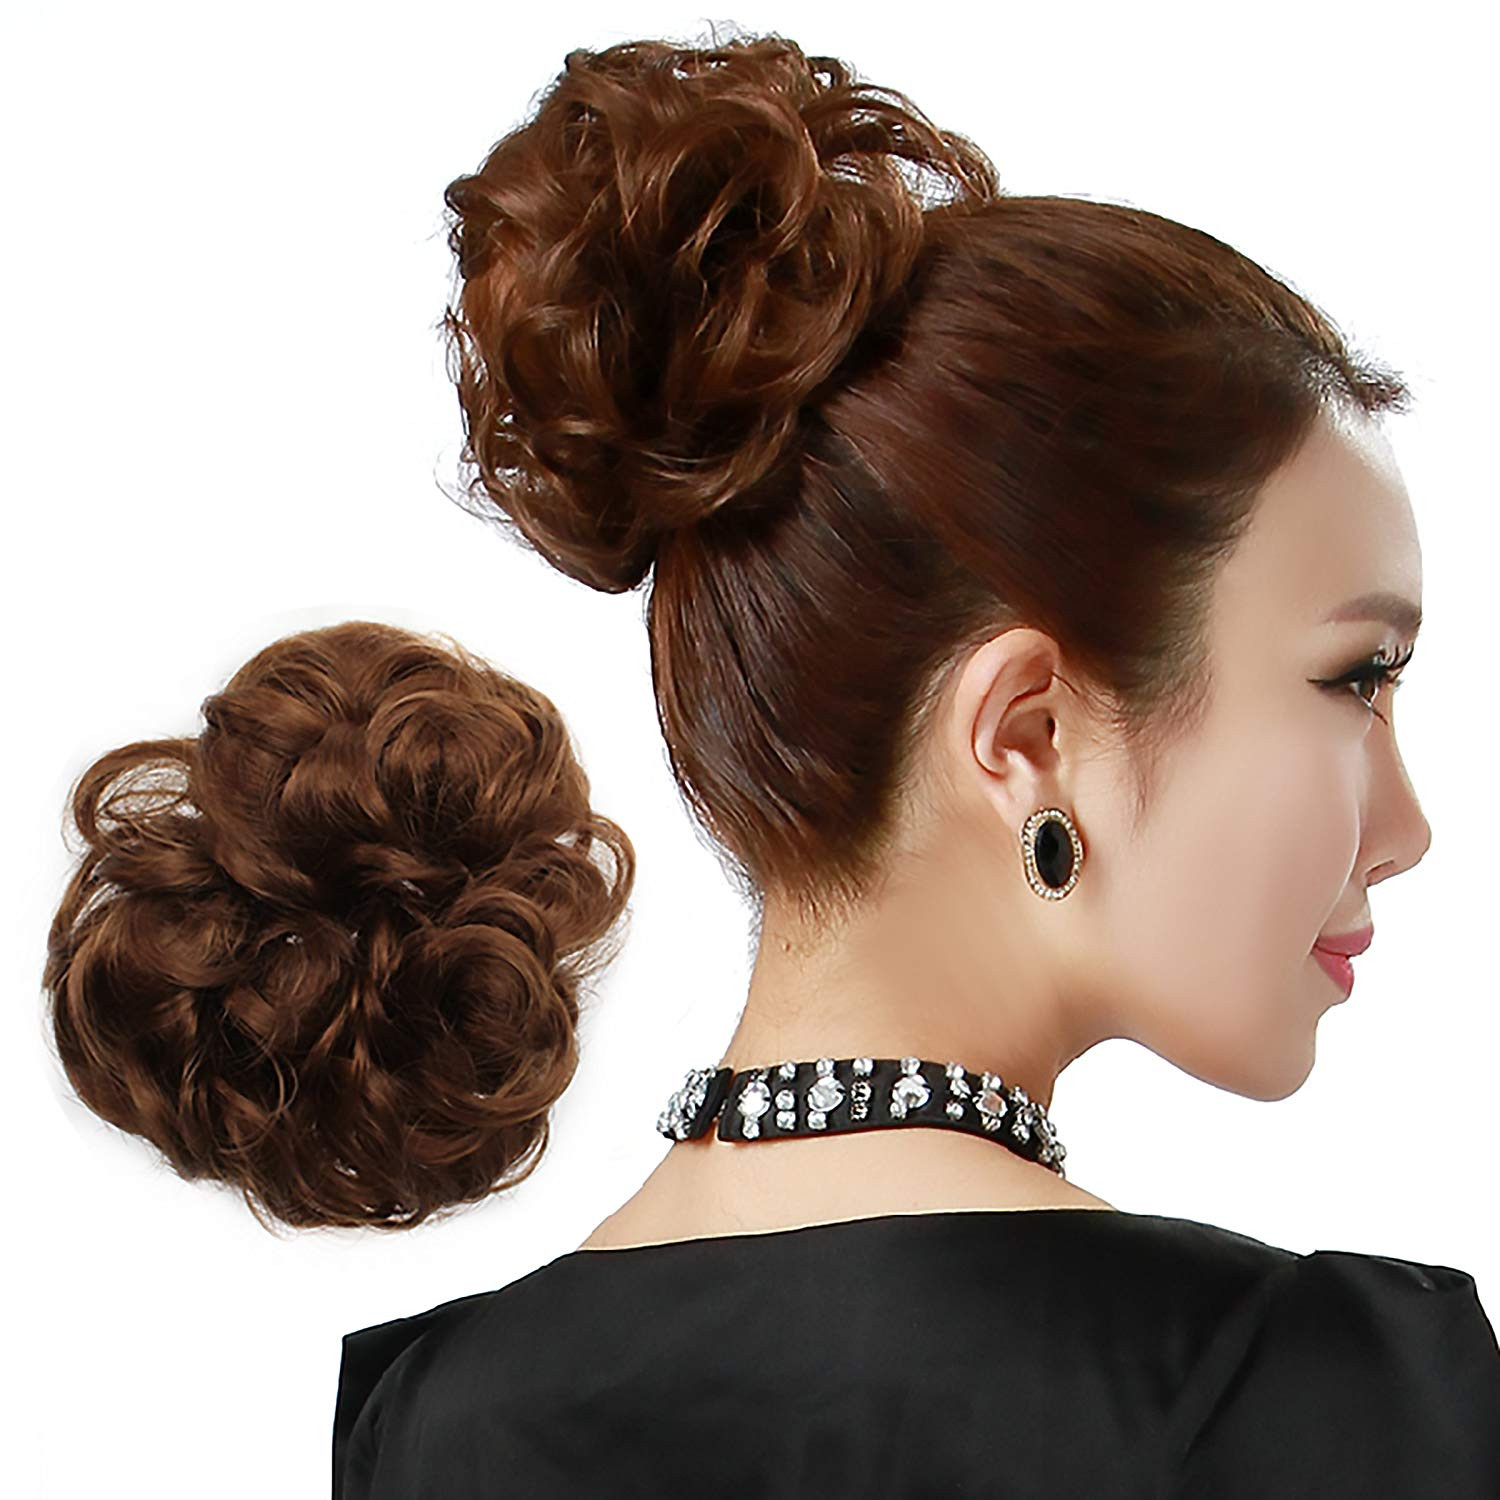 Onedor Ladies Synthetic Wavy Curly Or Messy Dish Hair Bun Extension Hairpiece Scrunchie Chignon Tray Ponytail (2# Darkest Brown)